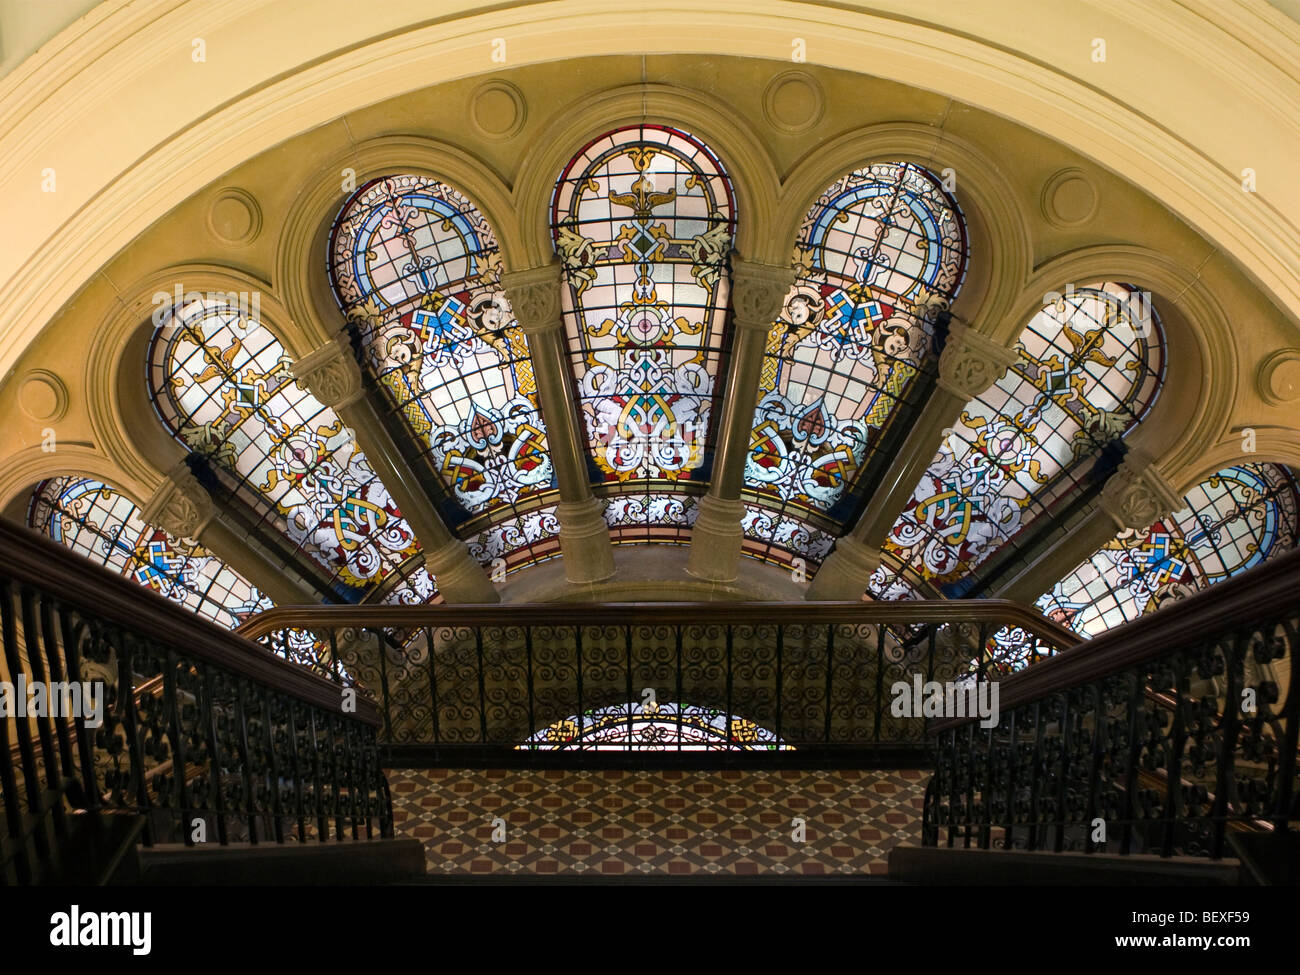 The ornate stained glass windows in the Queen Victoria Building, Sydney, Australia - Stock Image